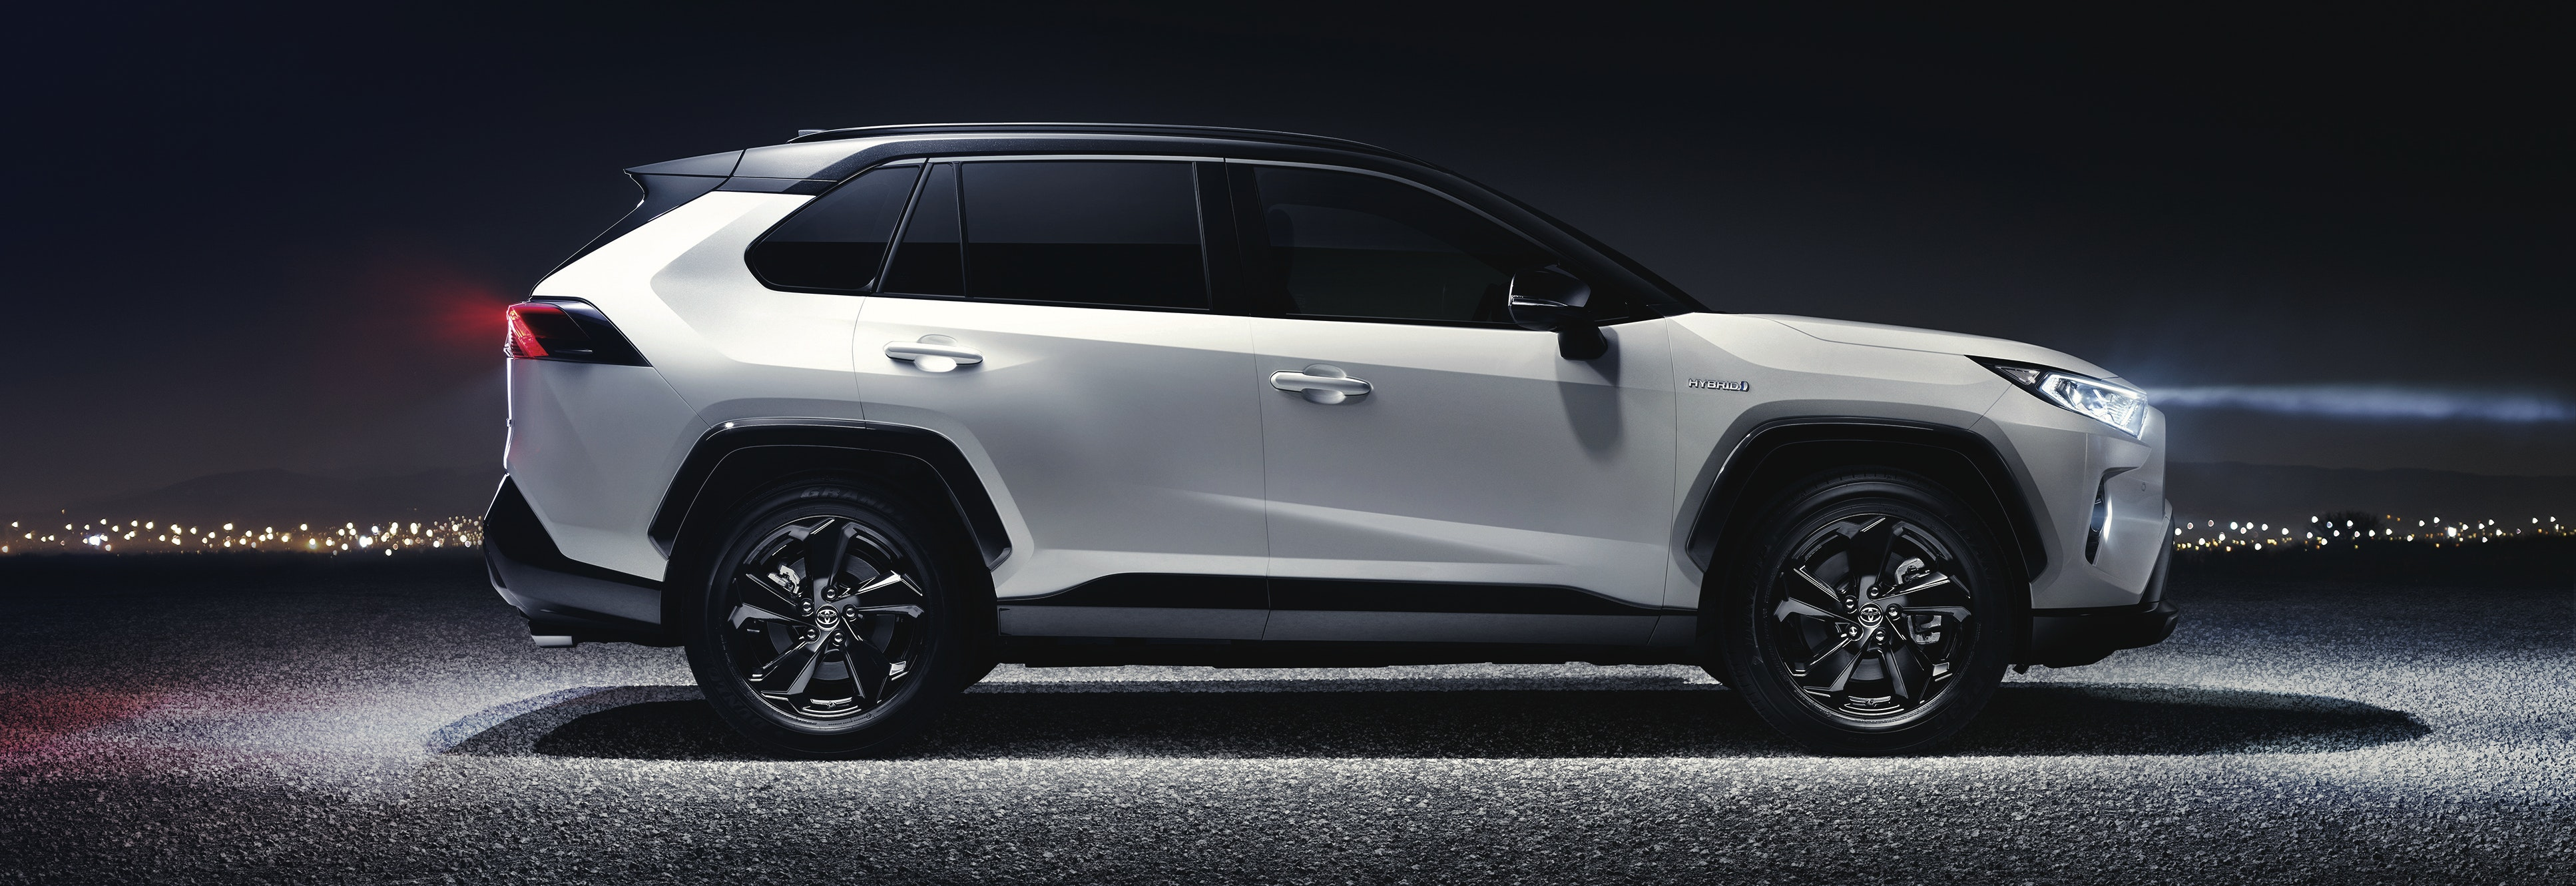 2019 Toyota Rav4 Price Specs And Release Date Carwow